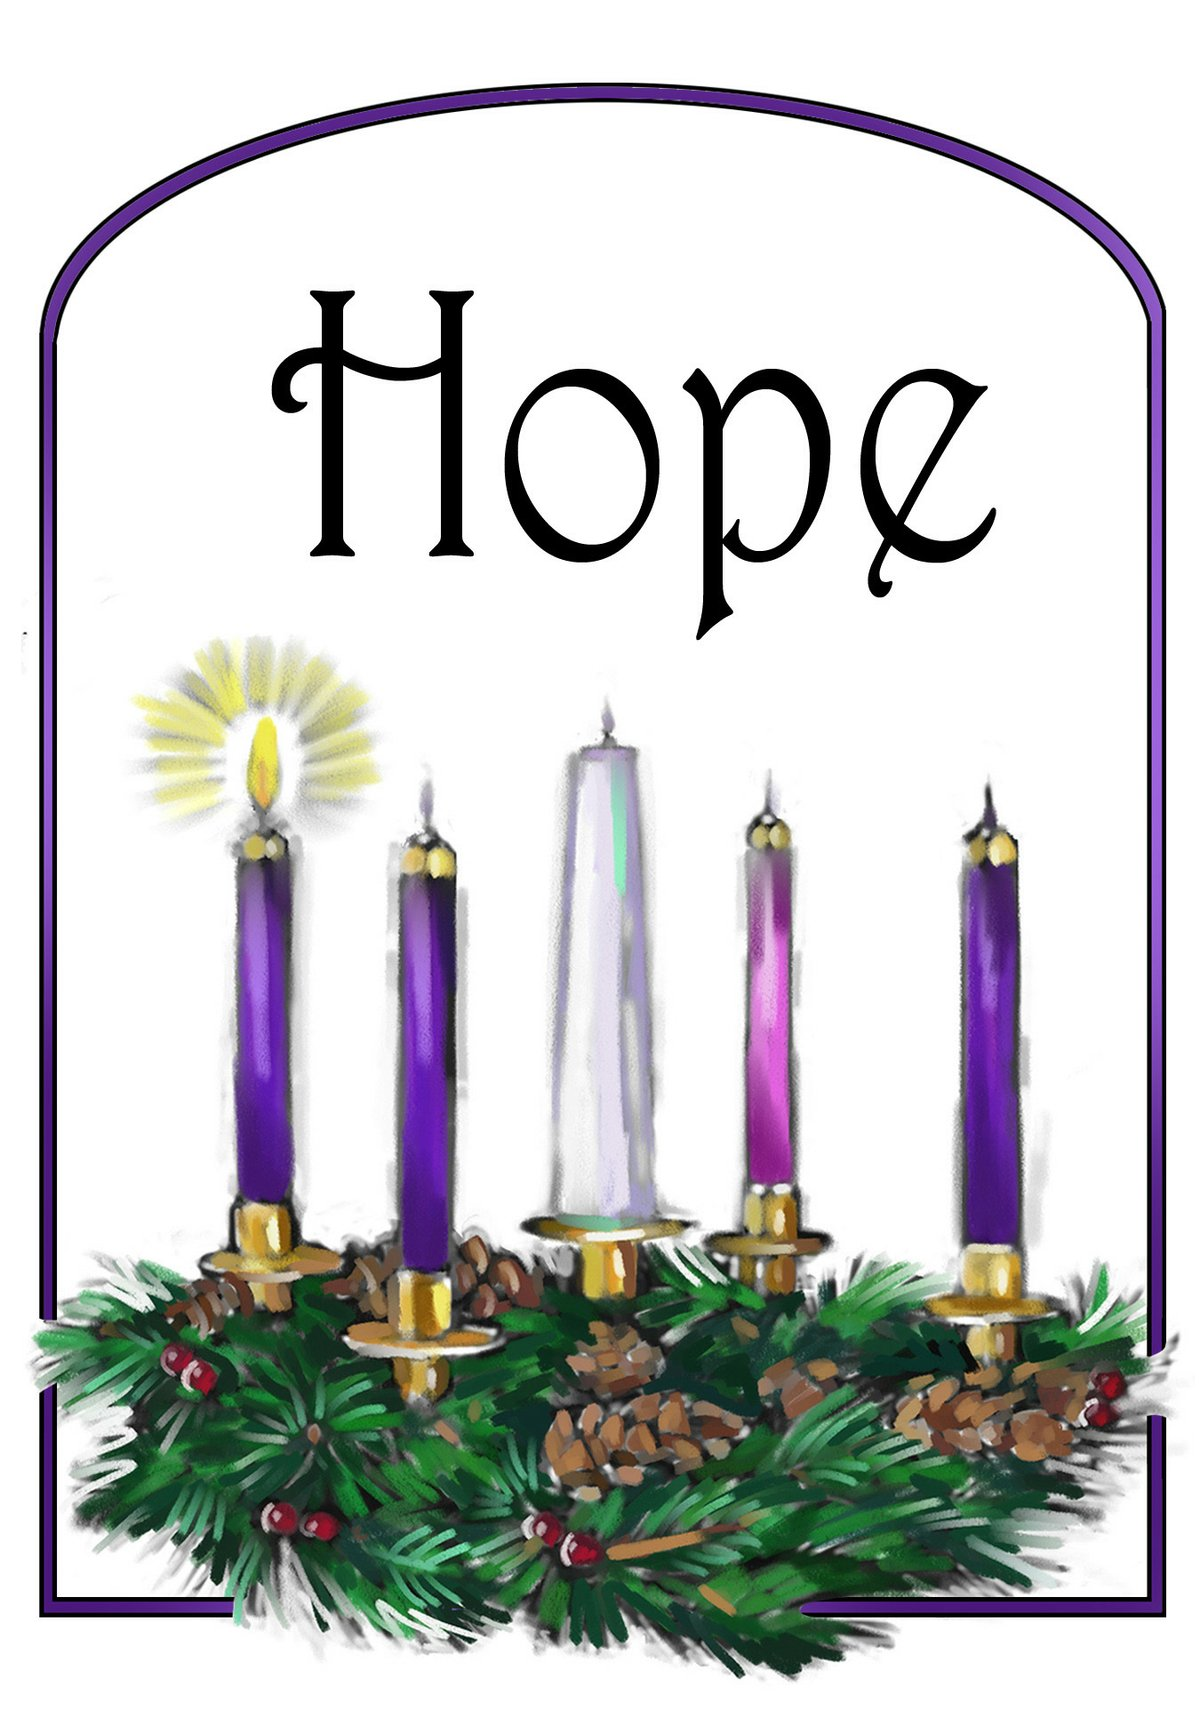 Advent clipart hope, Advent hope Transparent FREE for download on  WebStockReview 2020